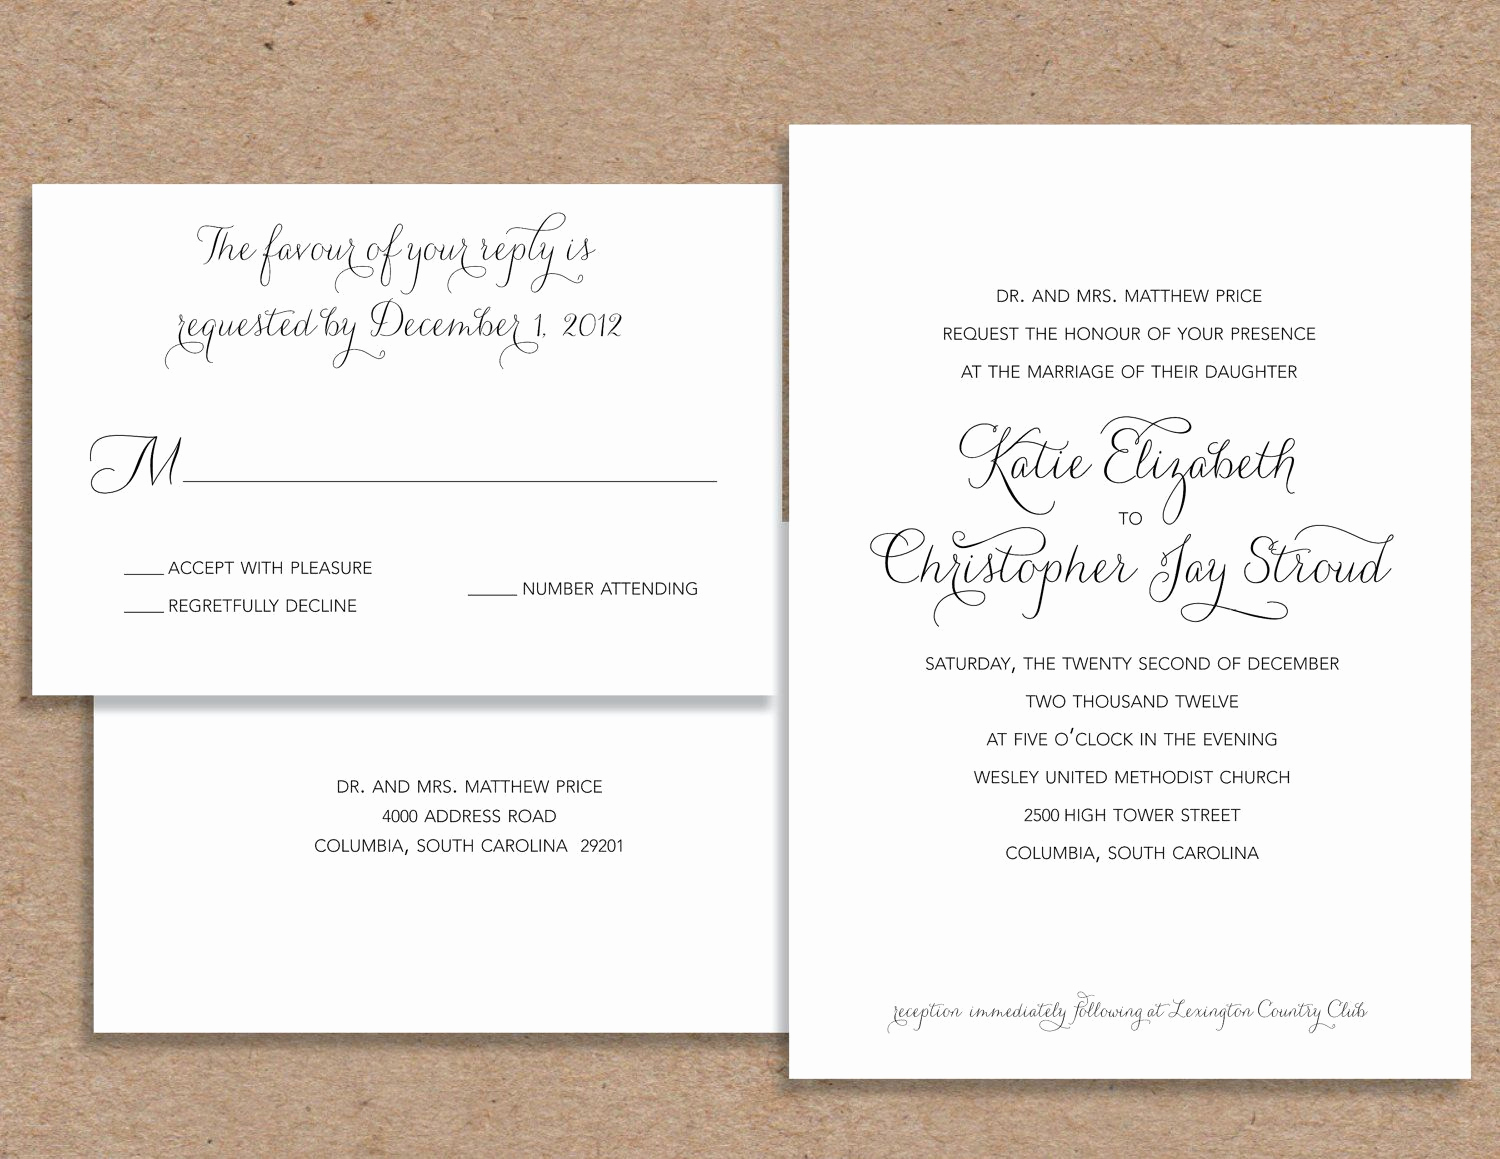 Couples Hosting Wedding Invitation Wording Fresh Wording for Couple Wedding Invitation